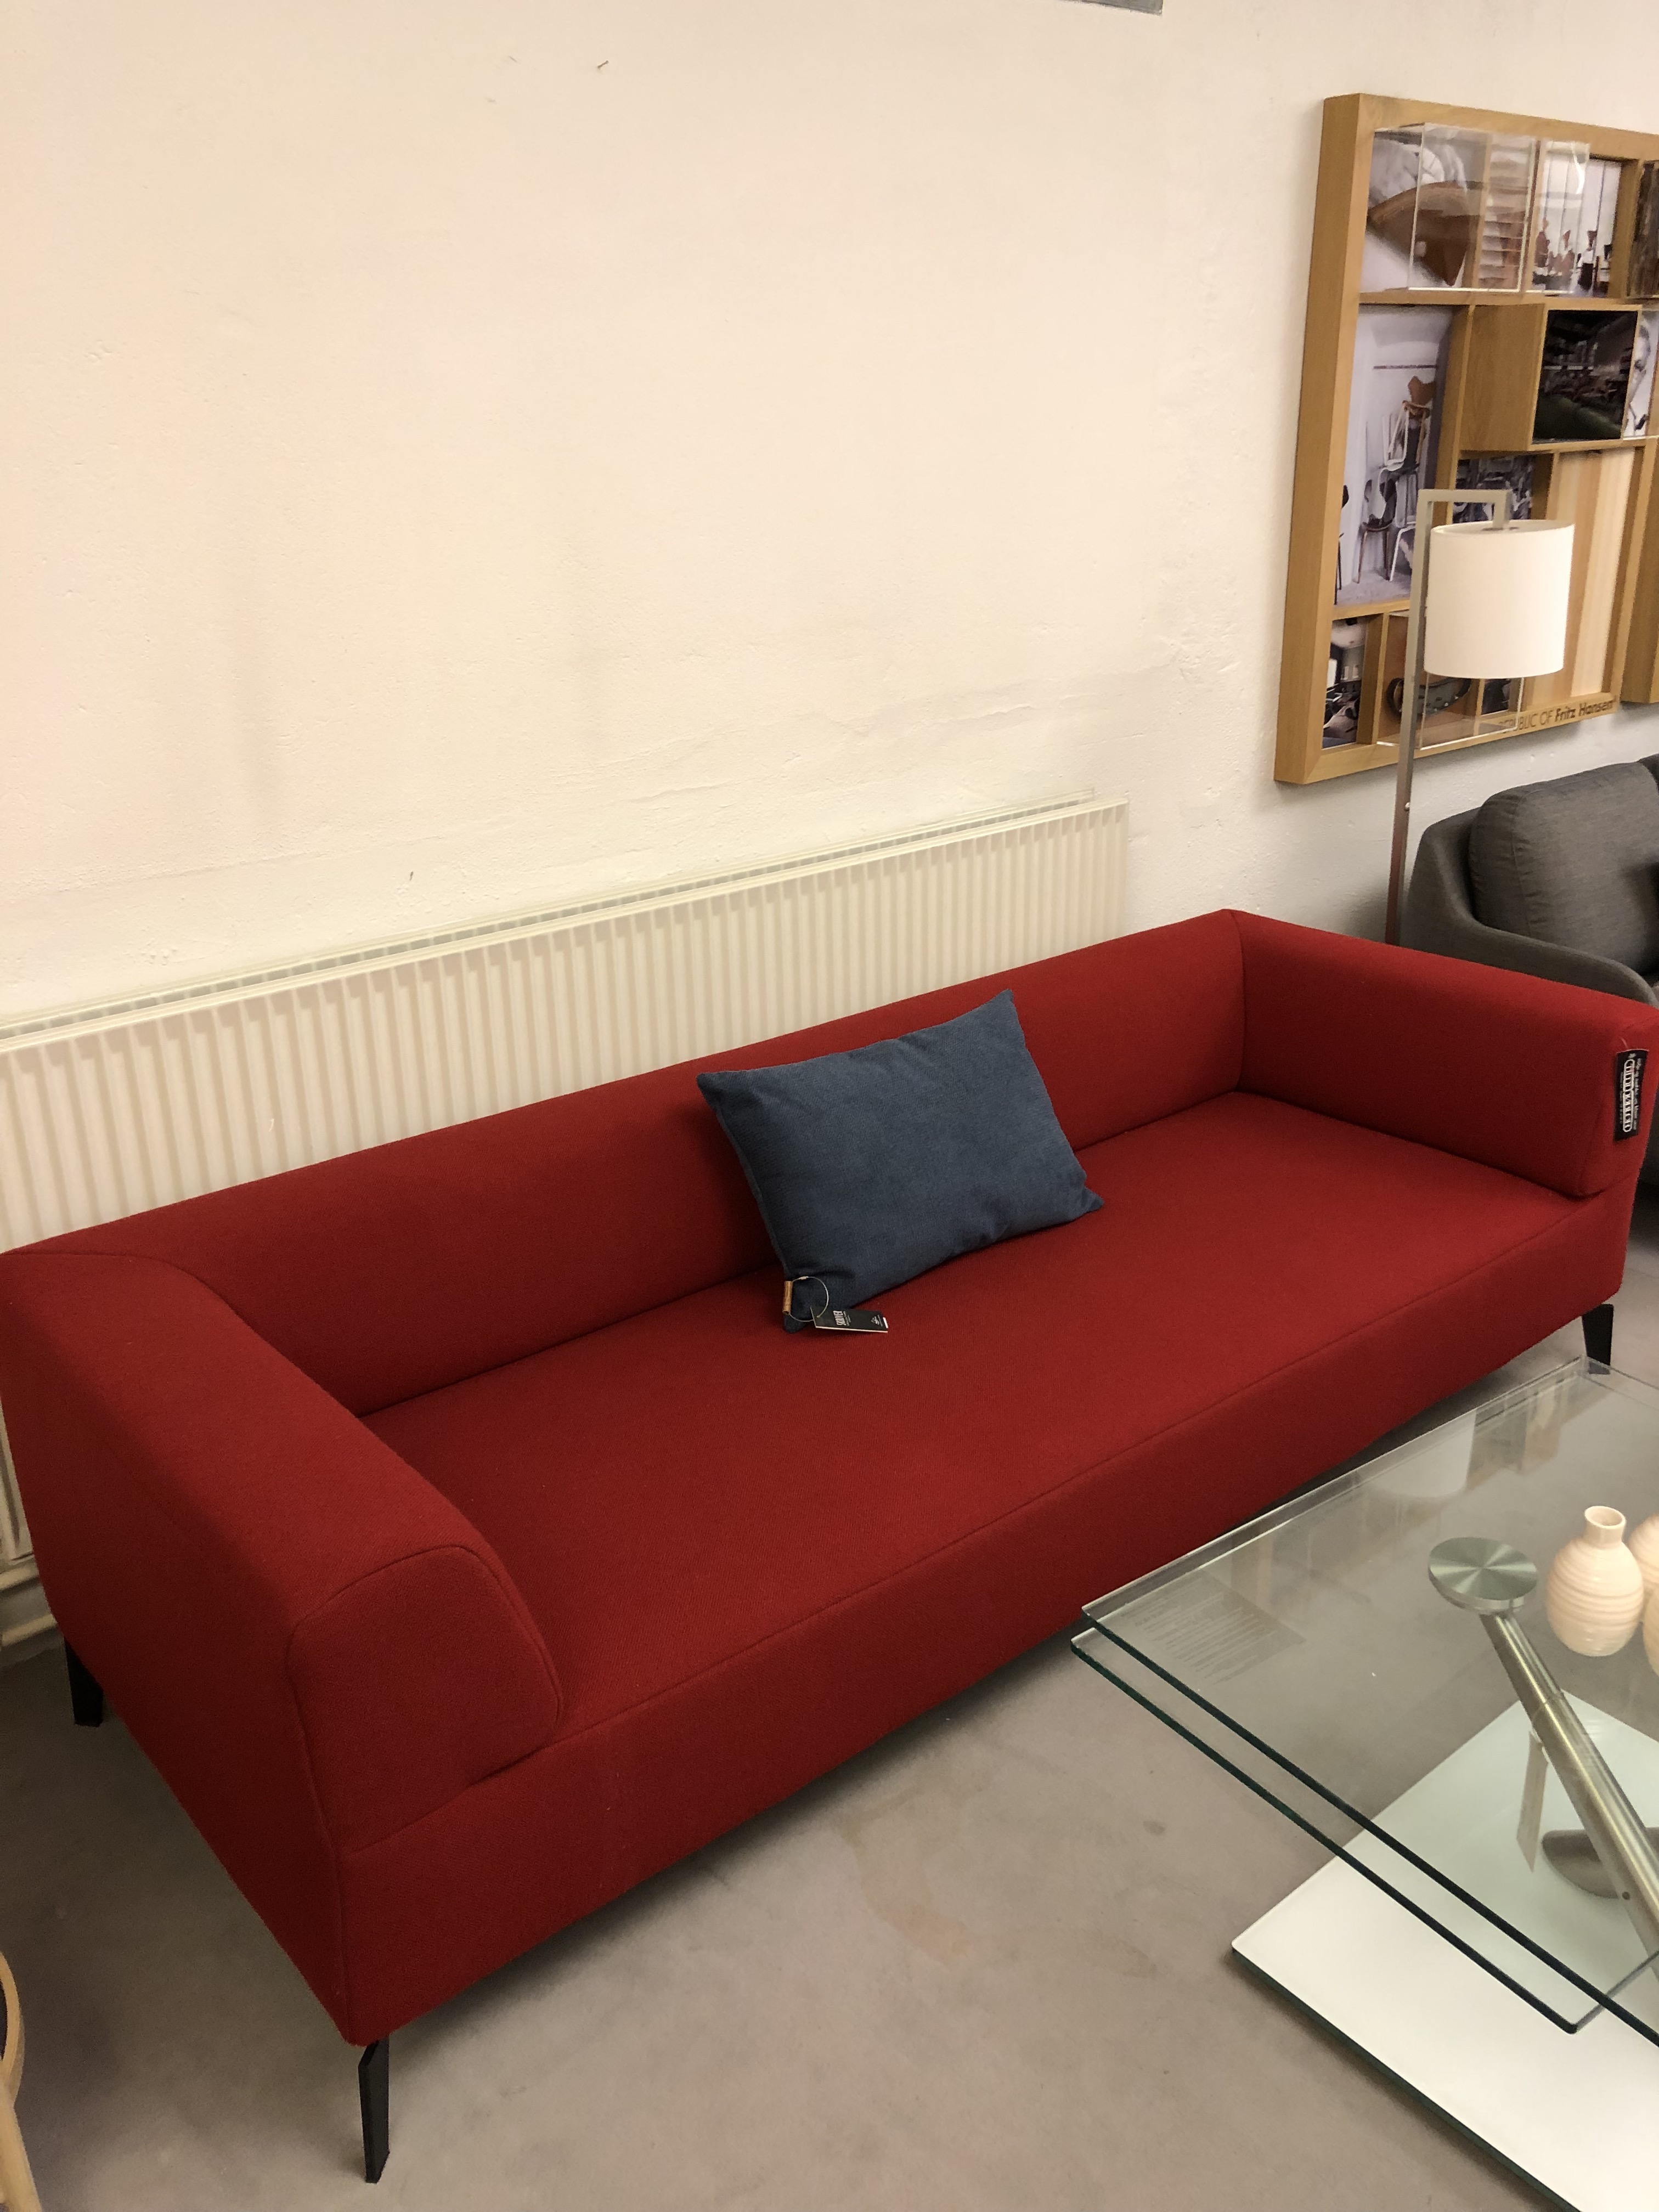 Rolf benz sofa 1 outlet timm m bler a s for Rolf benz outlet